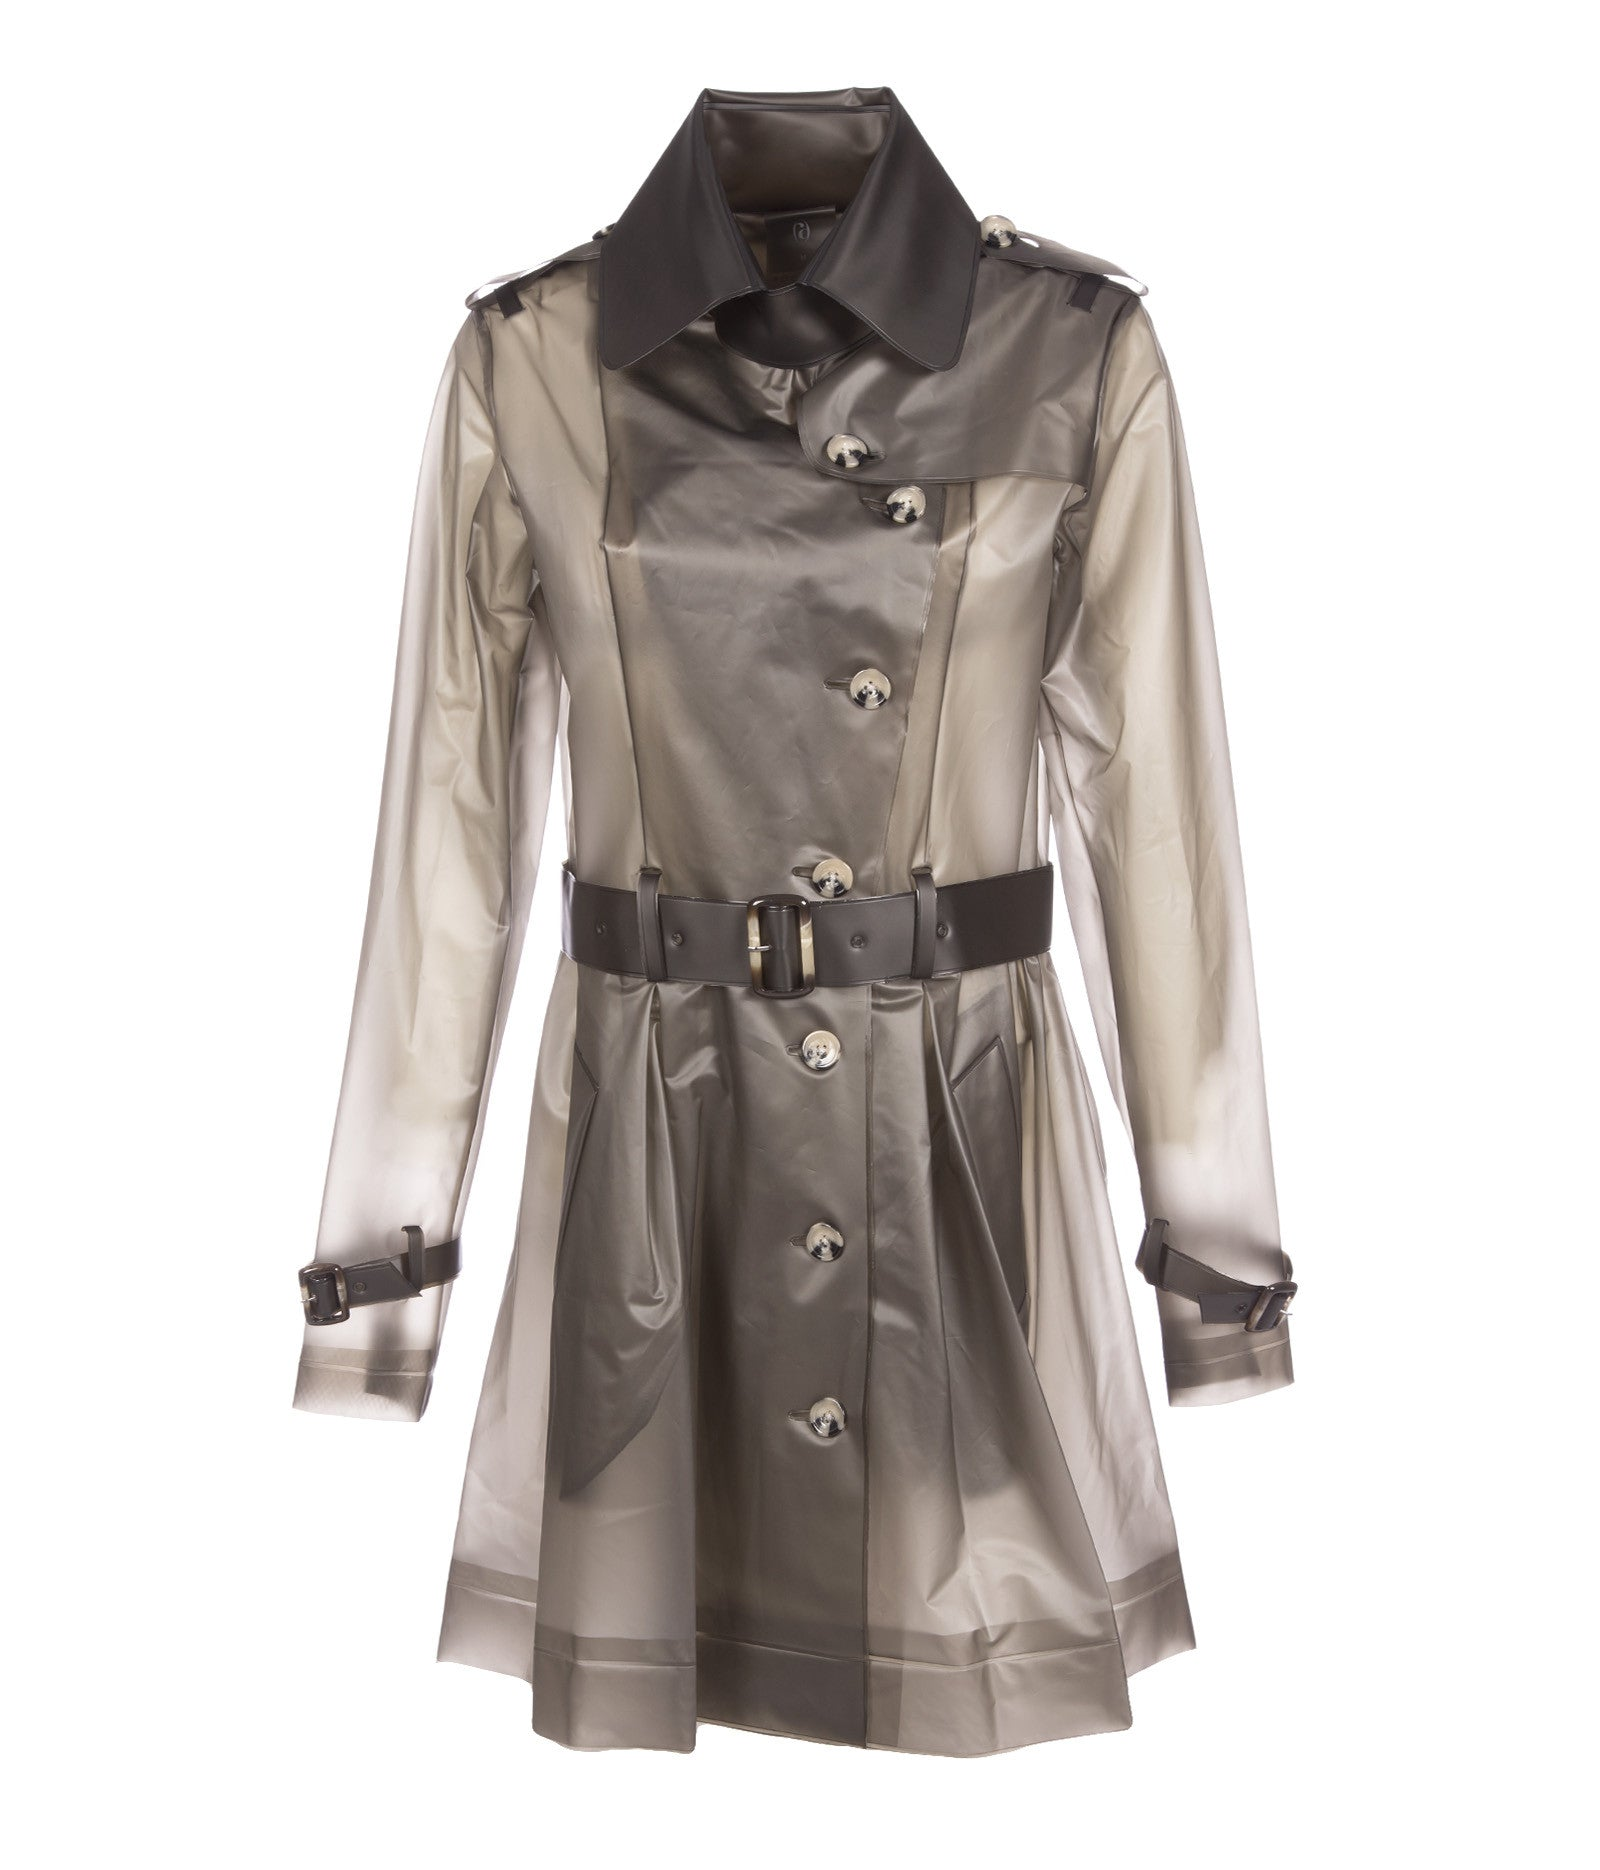 Tribeca Smokey Grey Raincoat